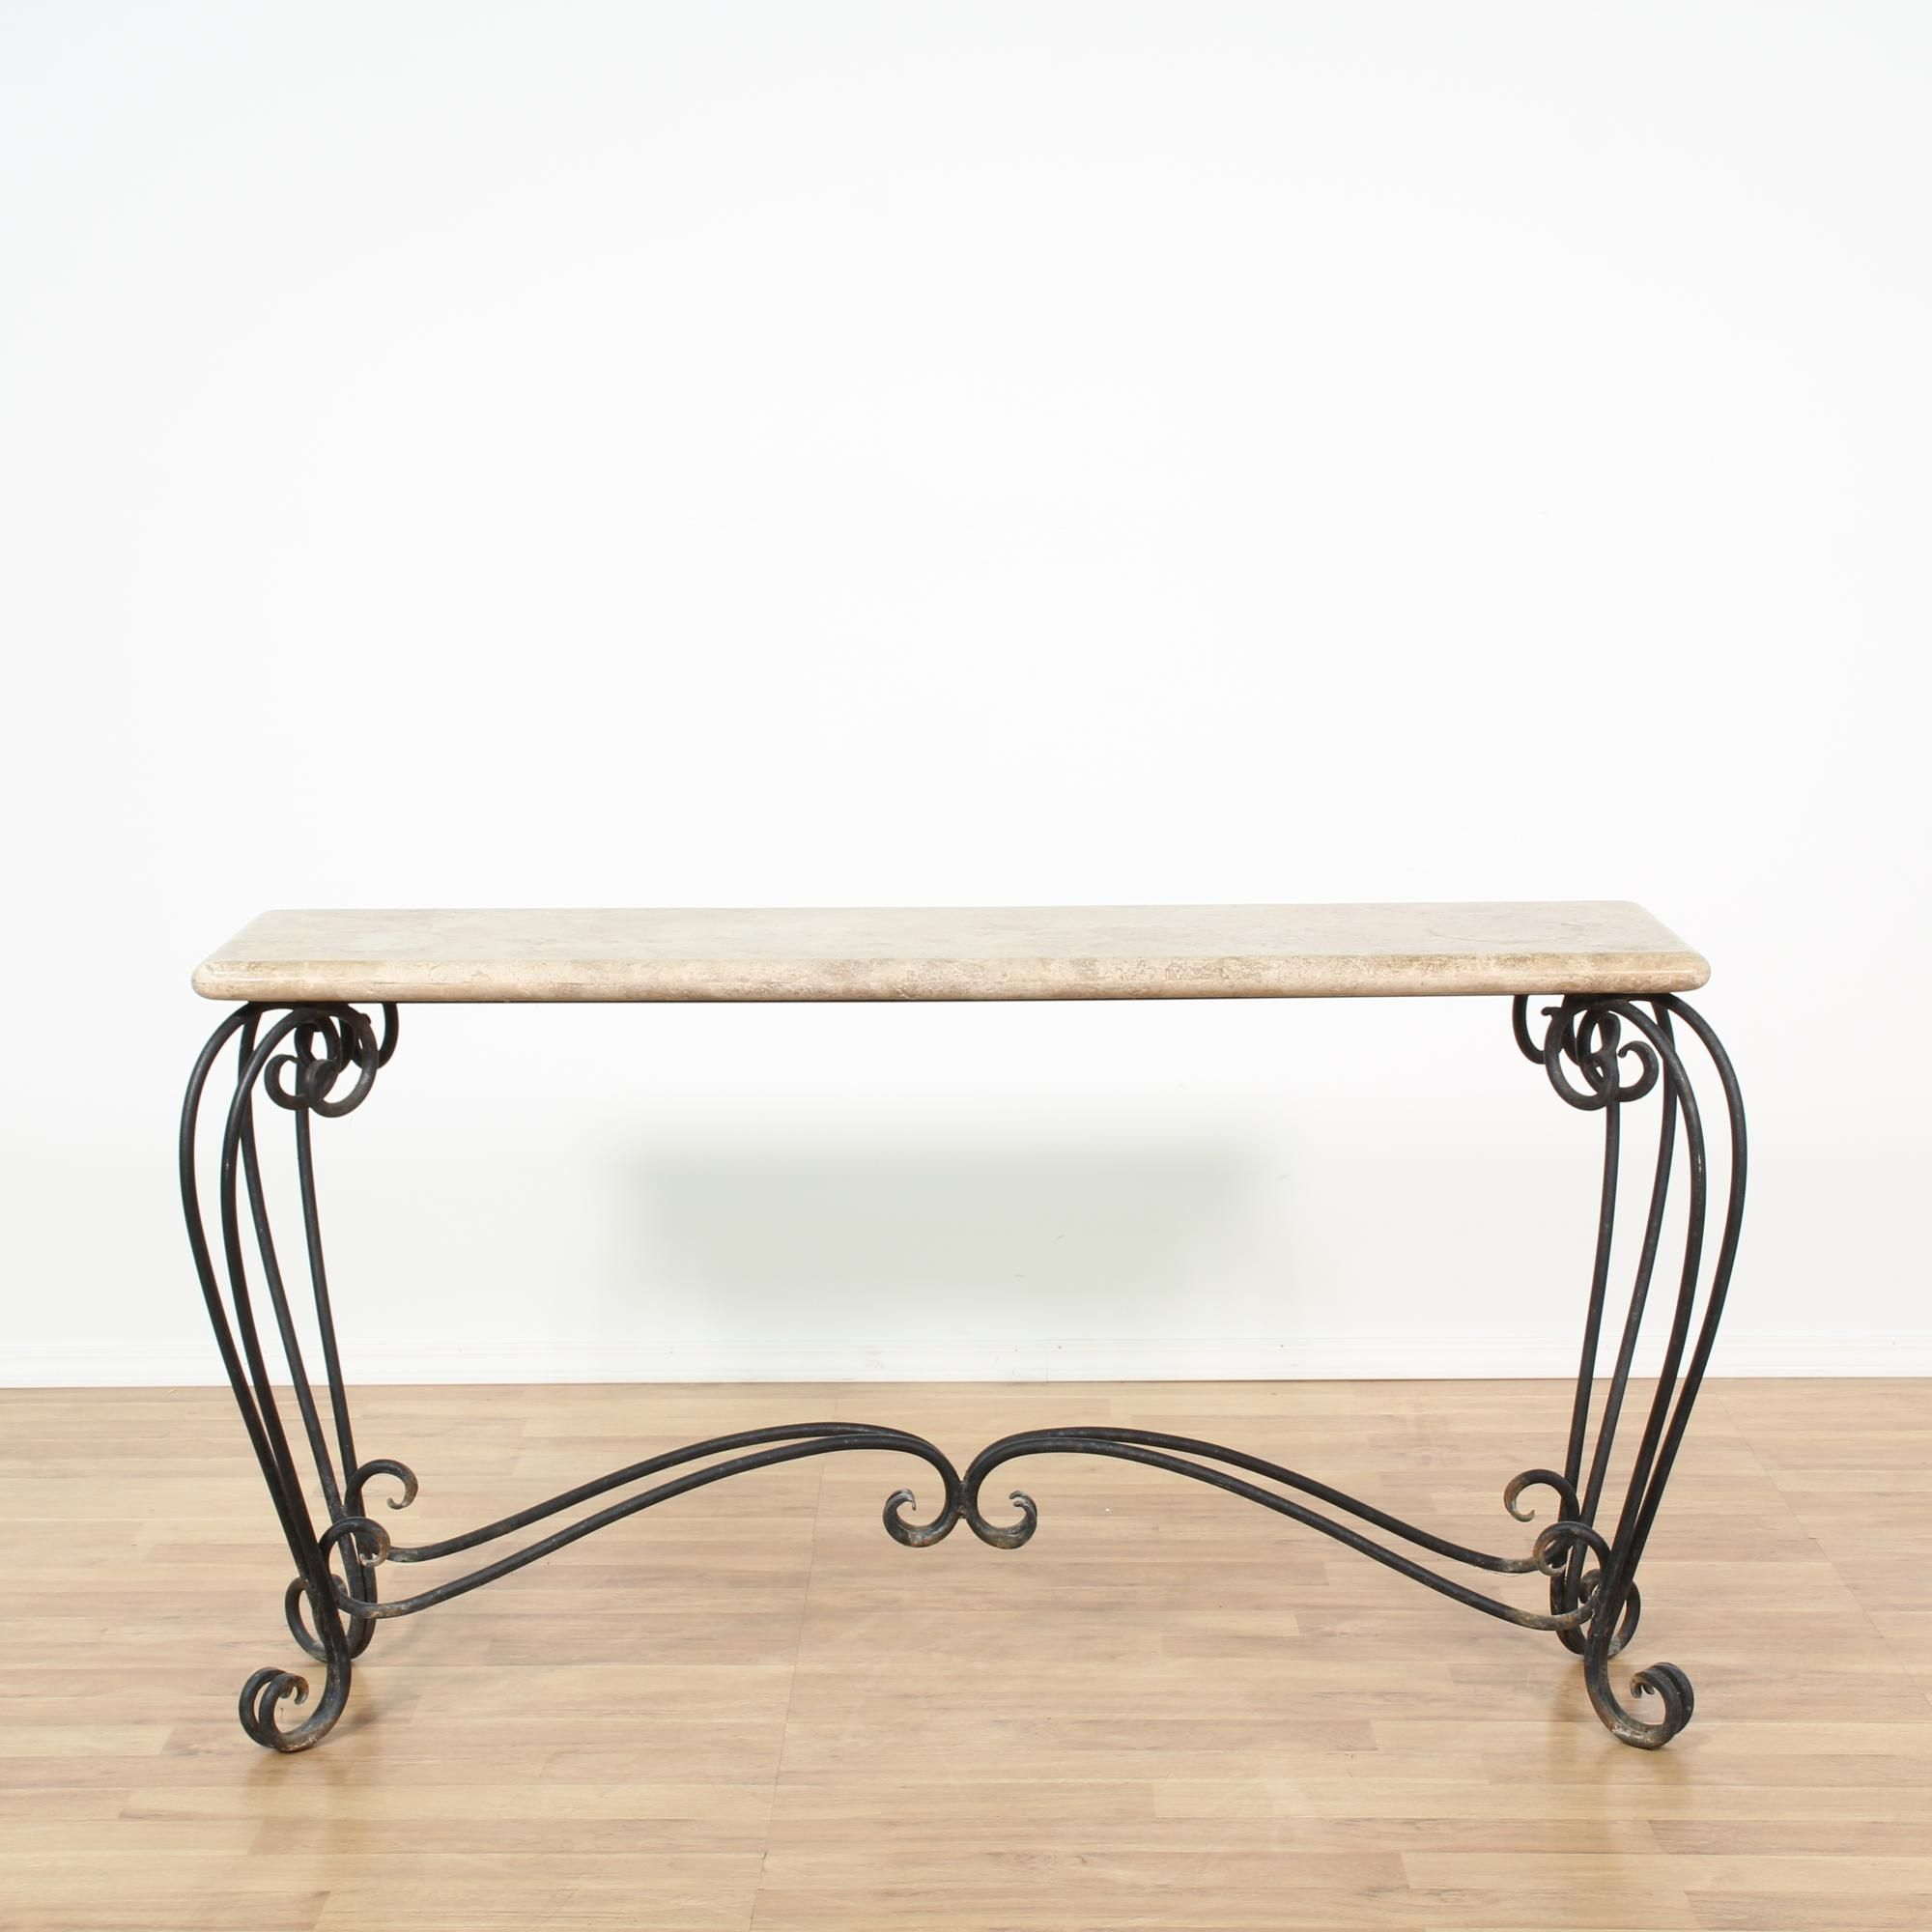 black contemporary sofa tables. This Sofa Table Is Featured In A Curved Black Wrought Iron. Contemporary Console Has Intricate Scrollwork Legs, Stretchers, And Shiny Marble Tables M